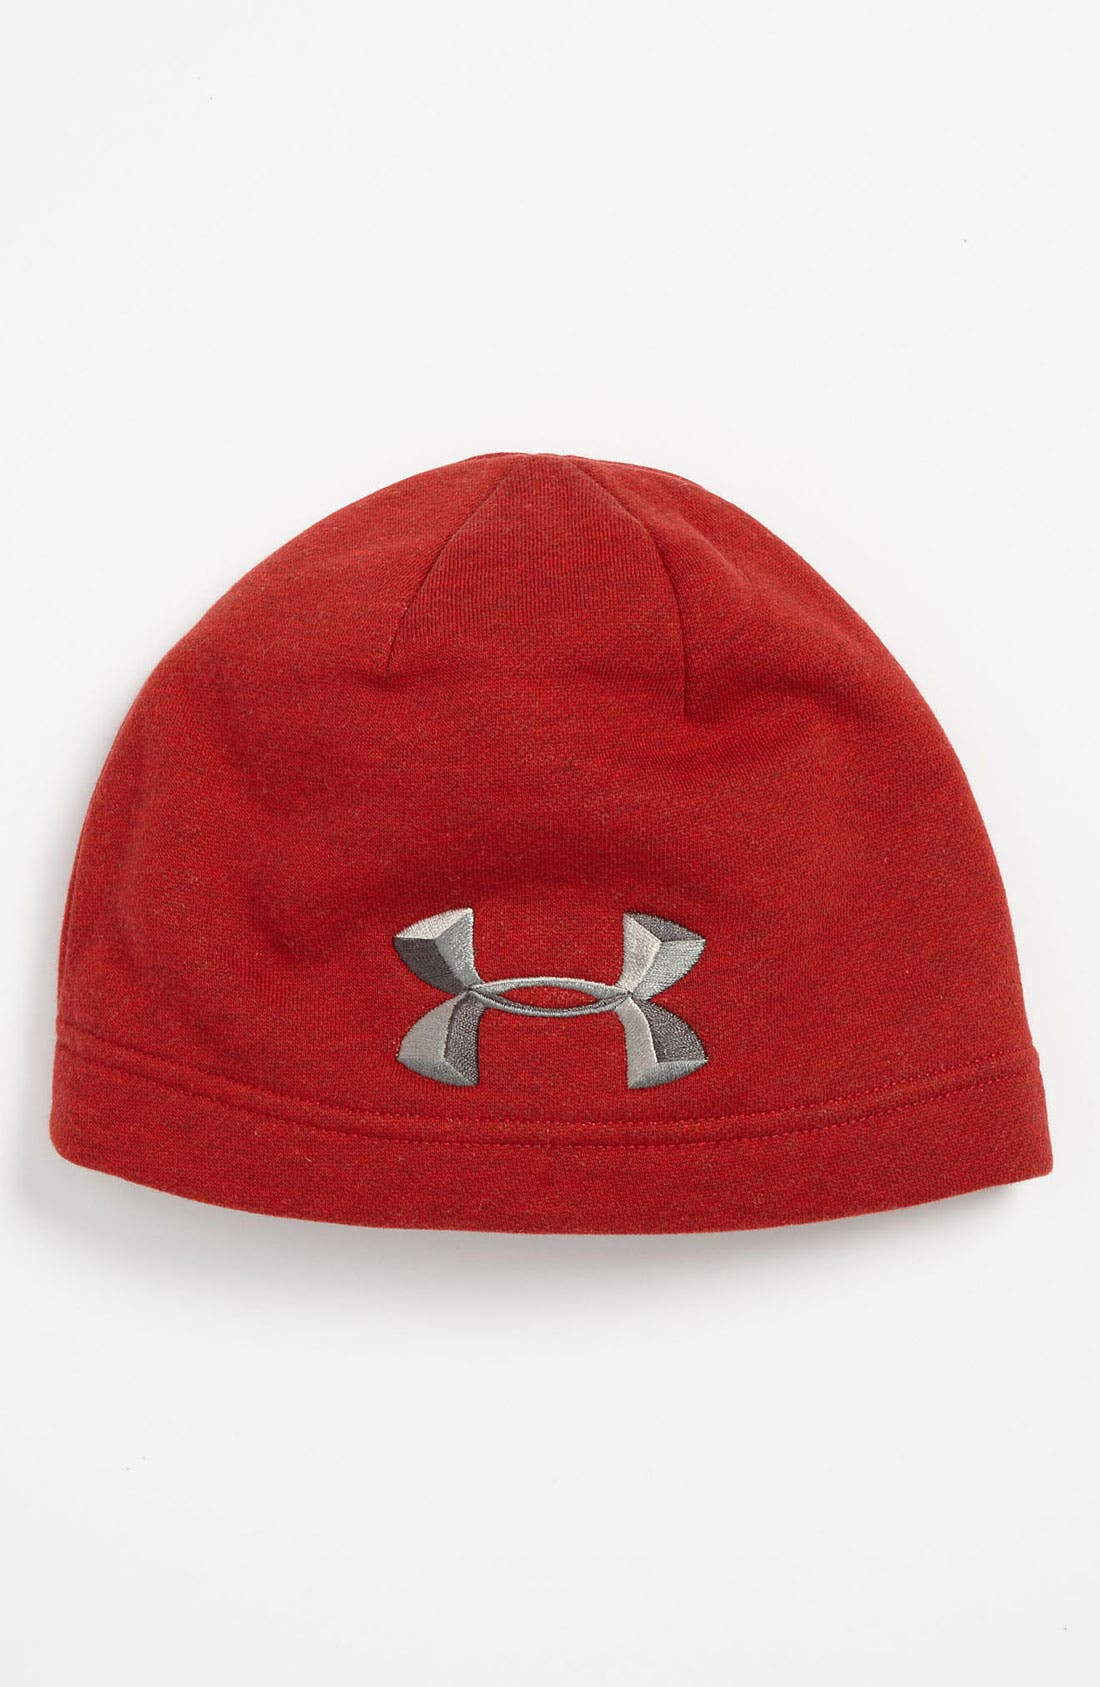 Alternate Image 1 Selected - Under Armour 'Storm' Beanie (Big Boys)